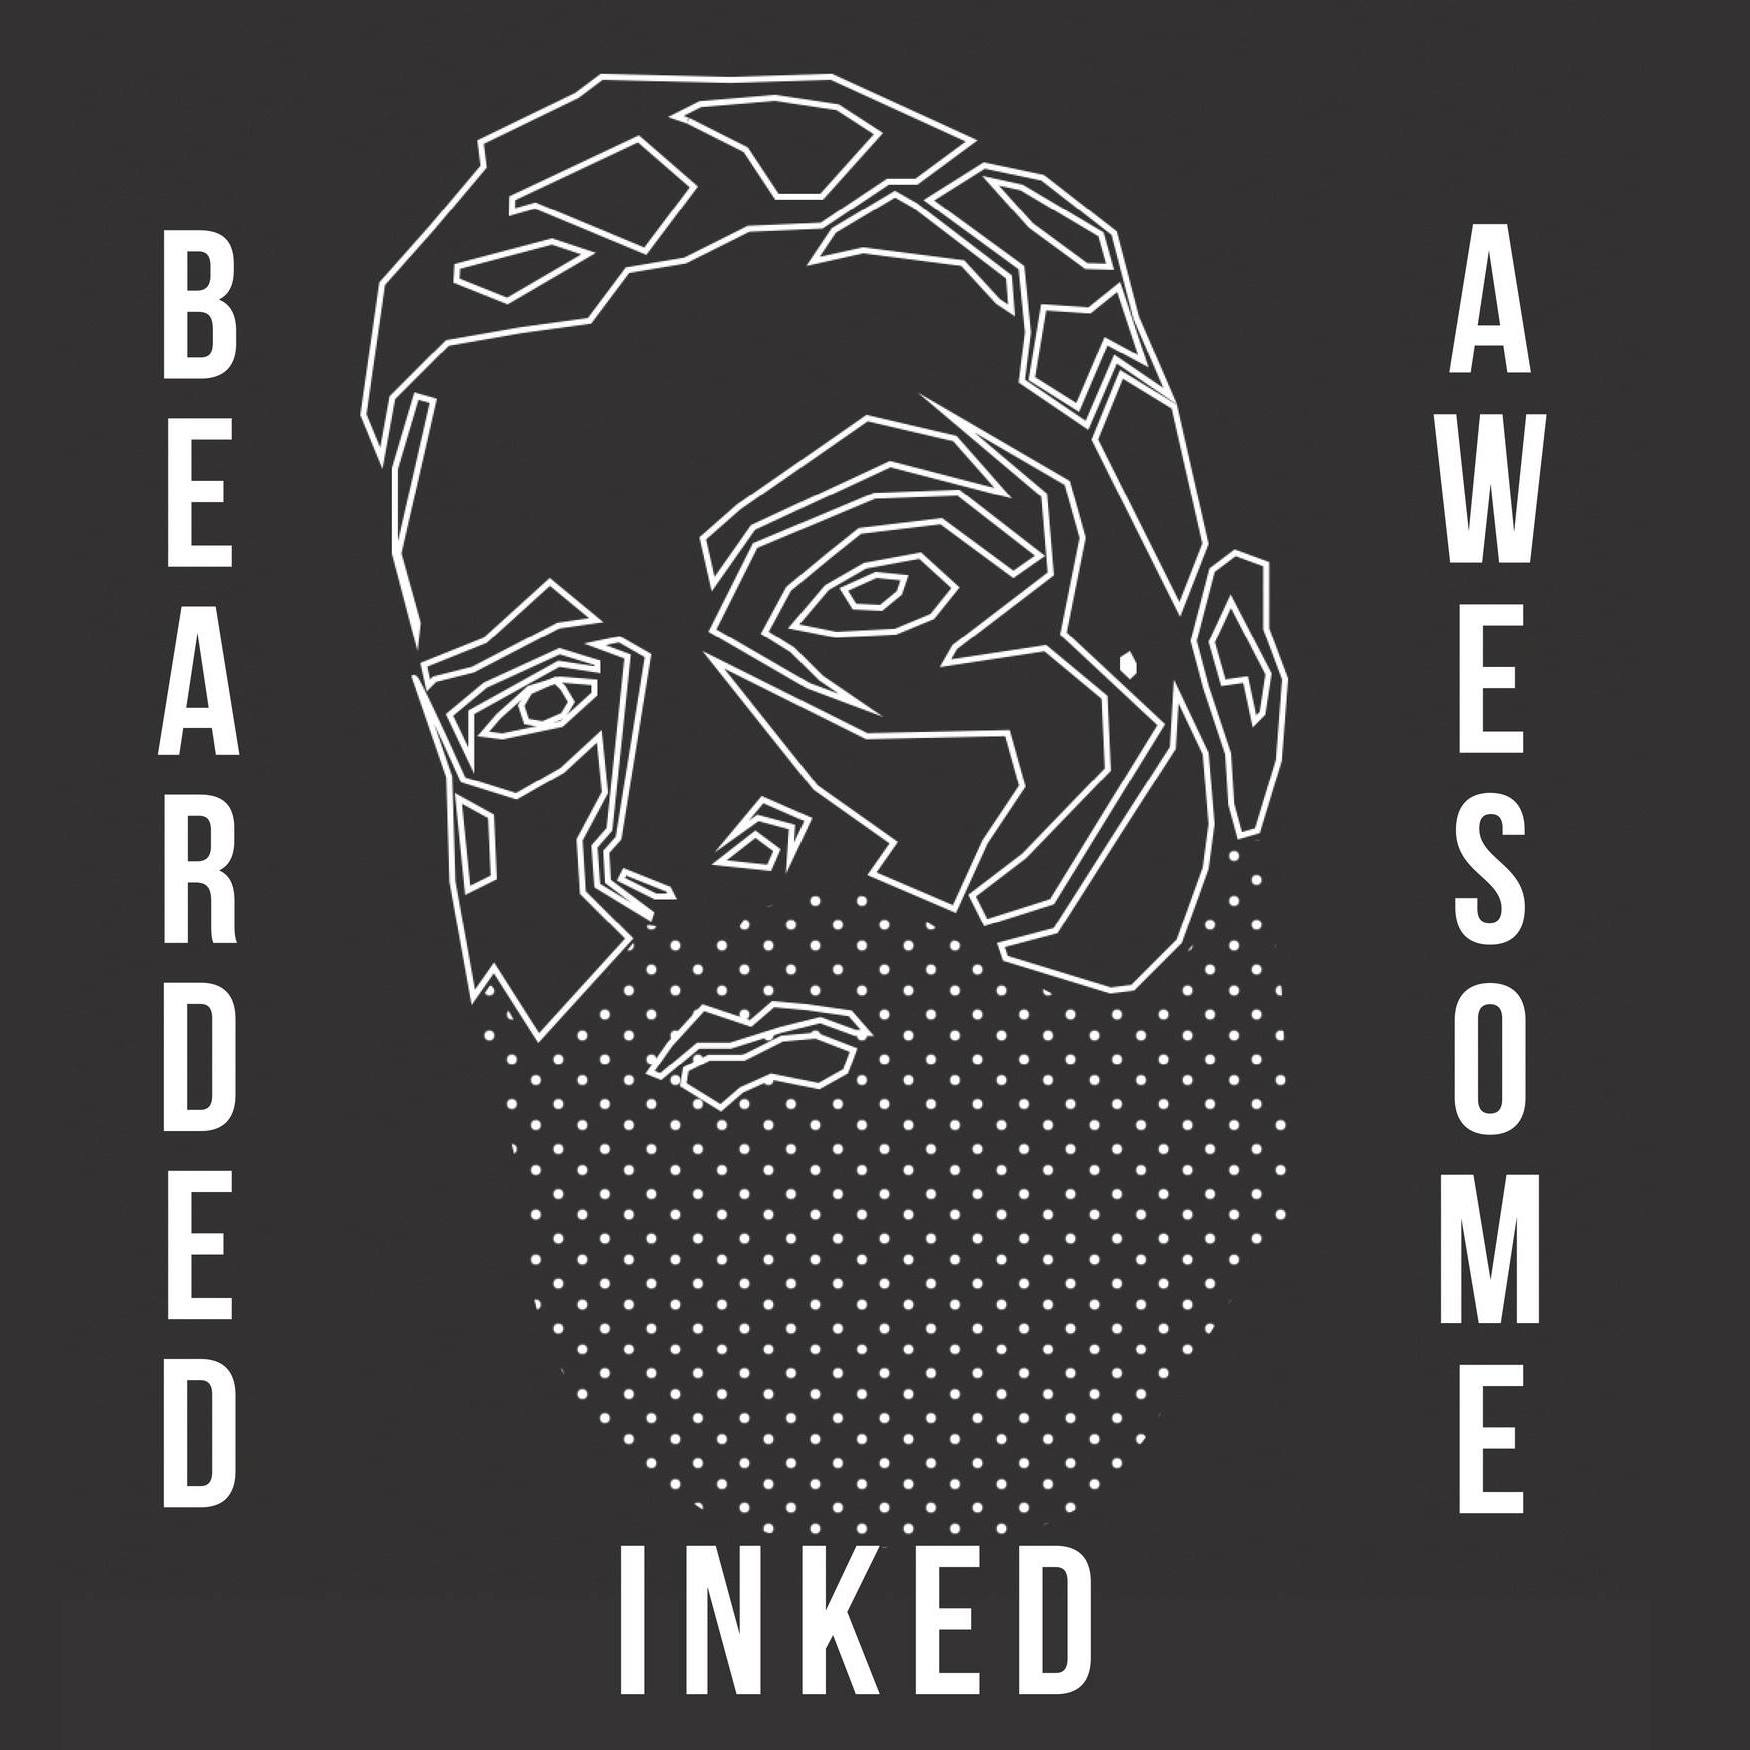 bearded inked and awesome